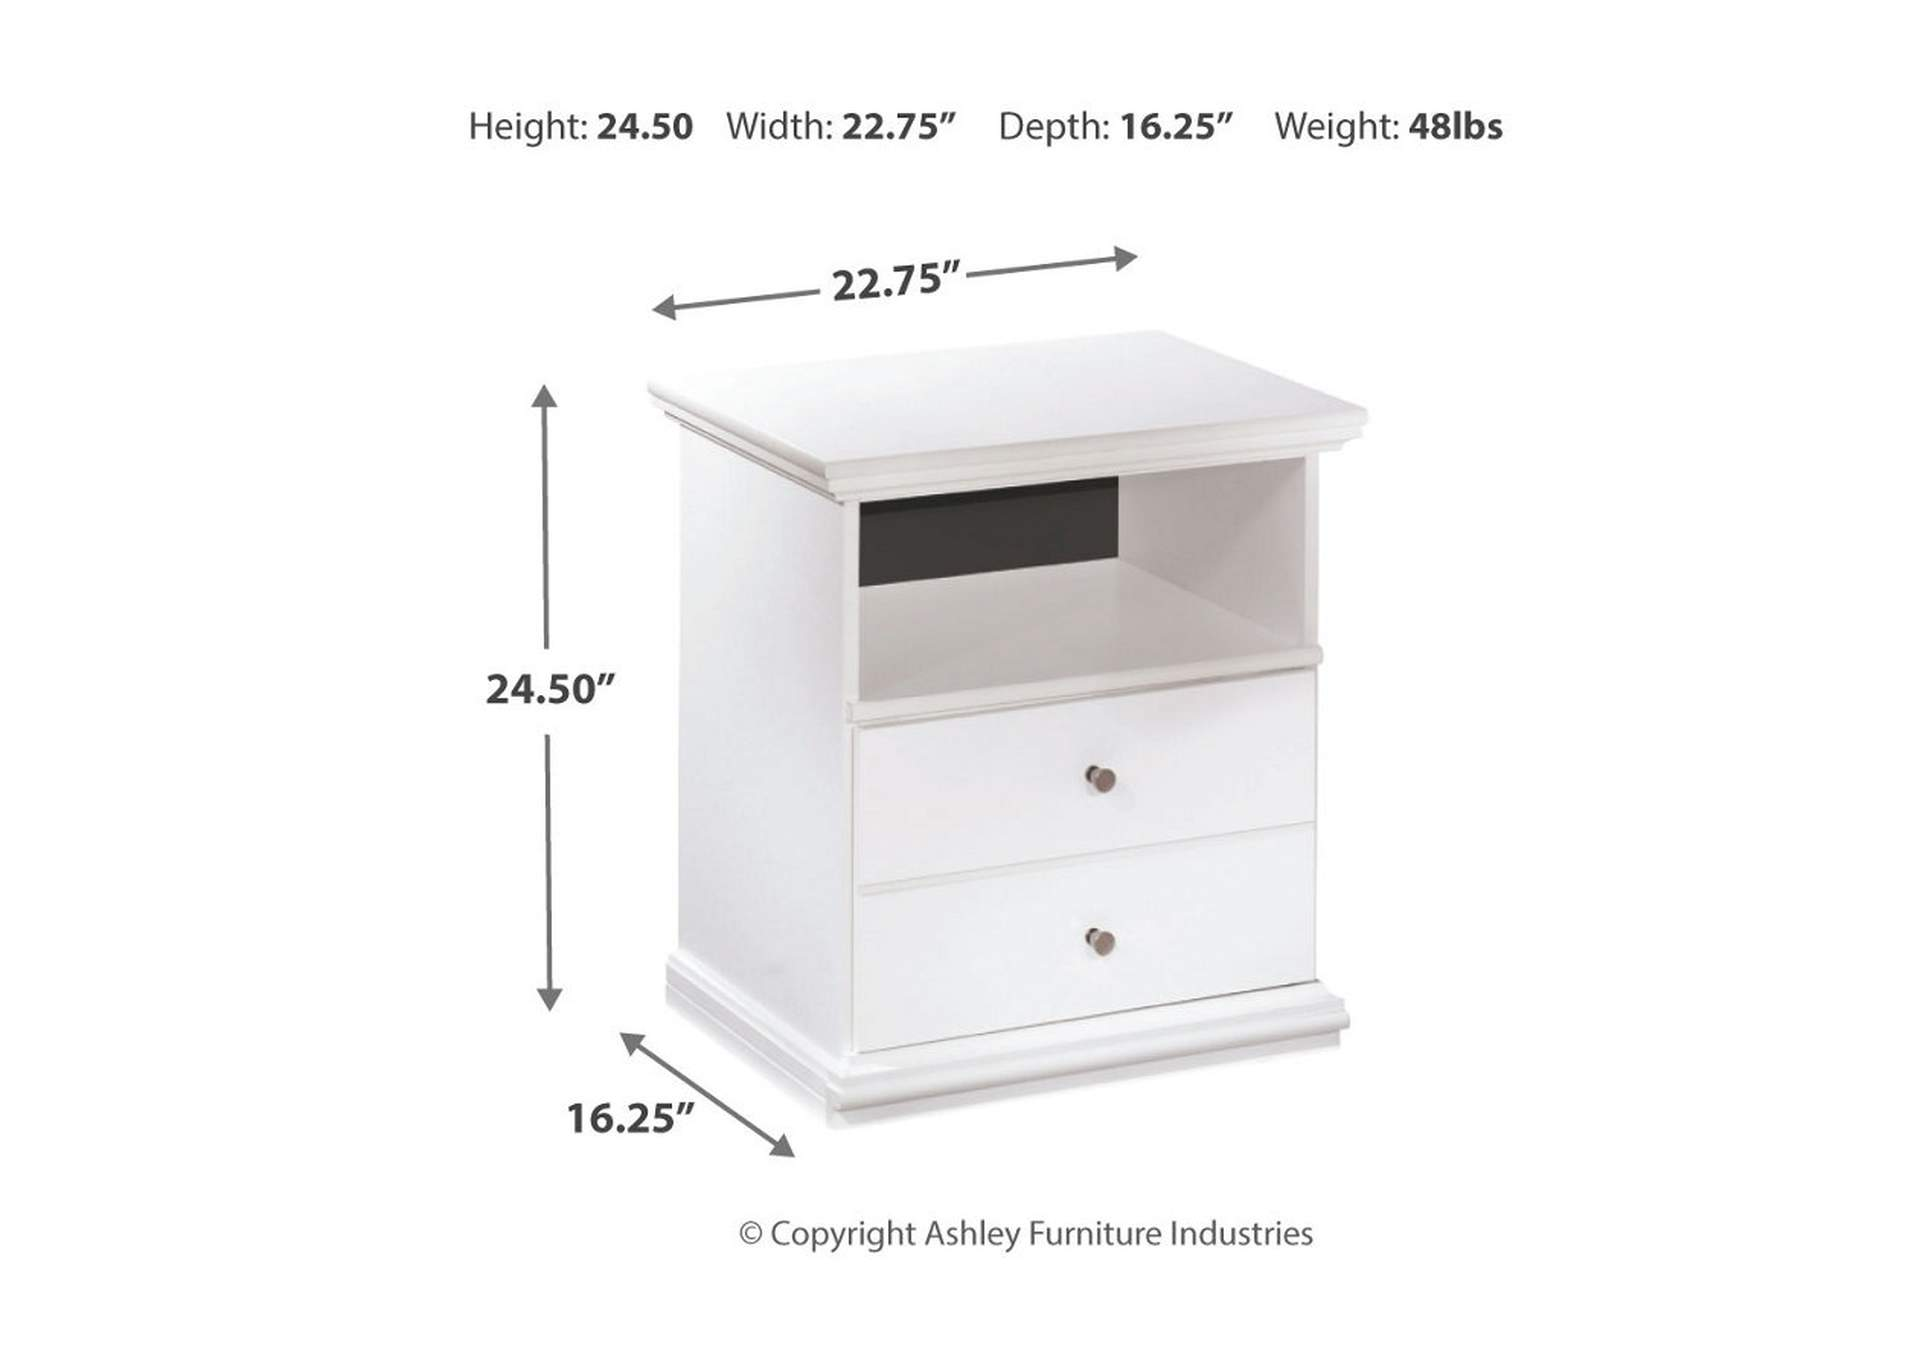 Bostwick Shoals One Drawer Nightstand,Direct To Consumer Express